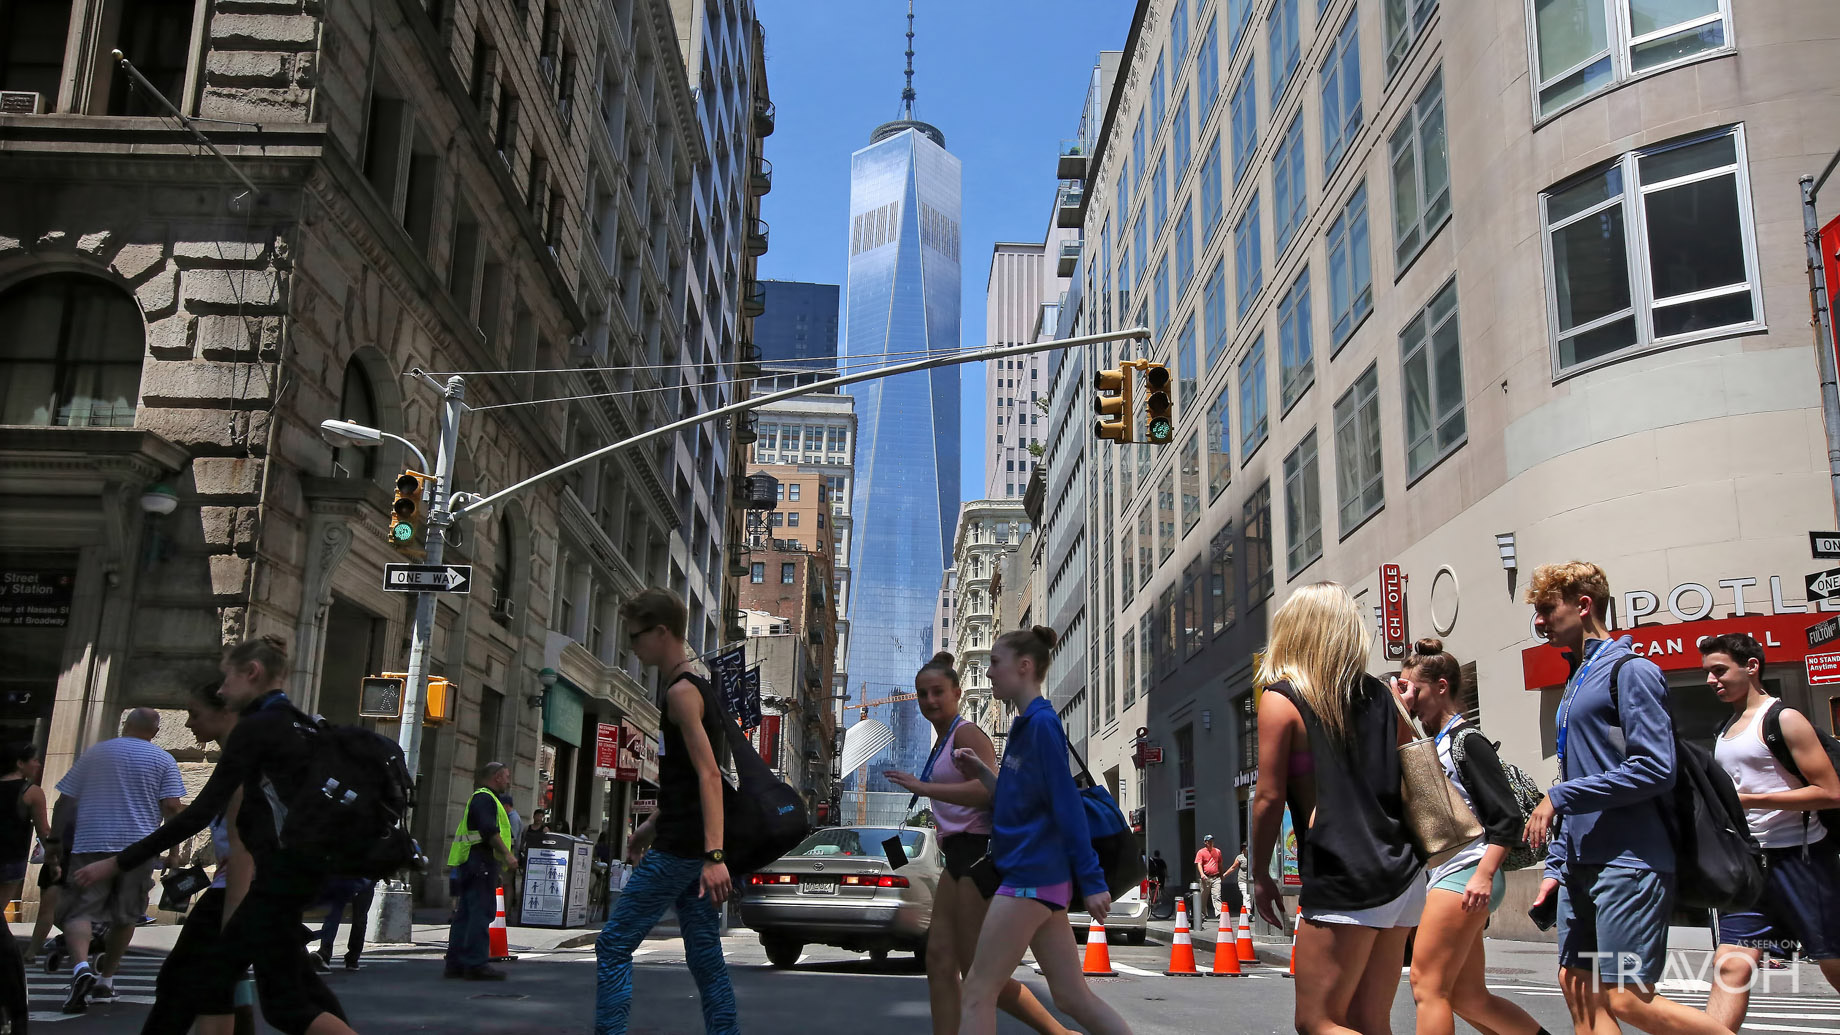 Check Out the Shows Filming in the City - The Top 5 Exciting Spring Break Activities in NYC for Young Kids